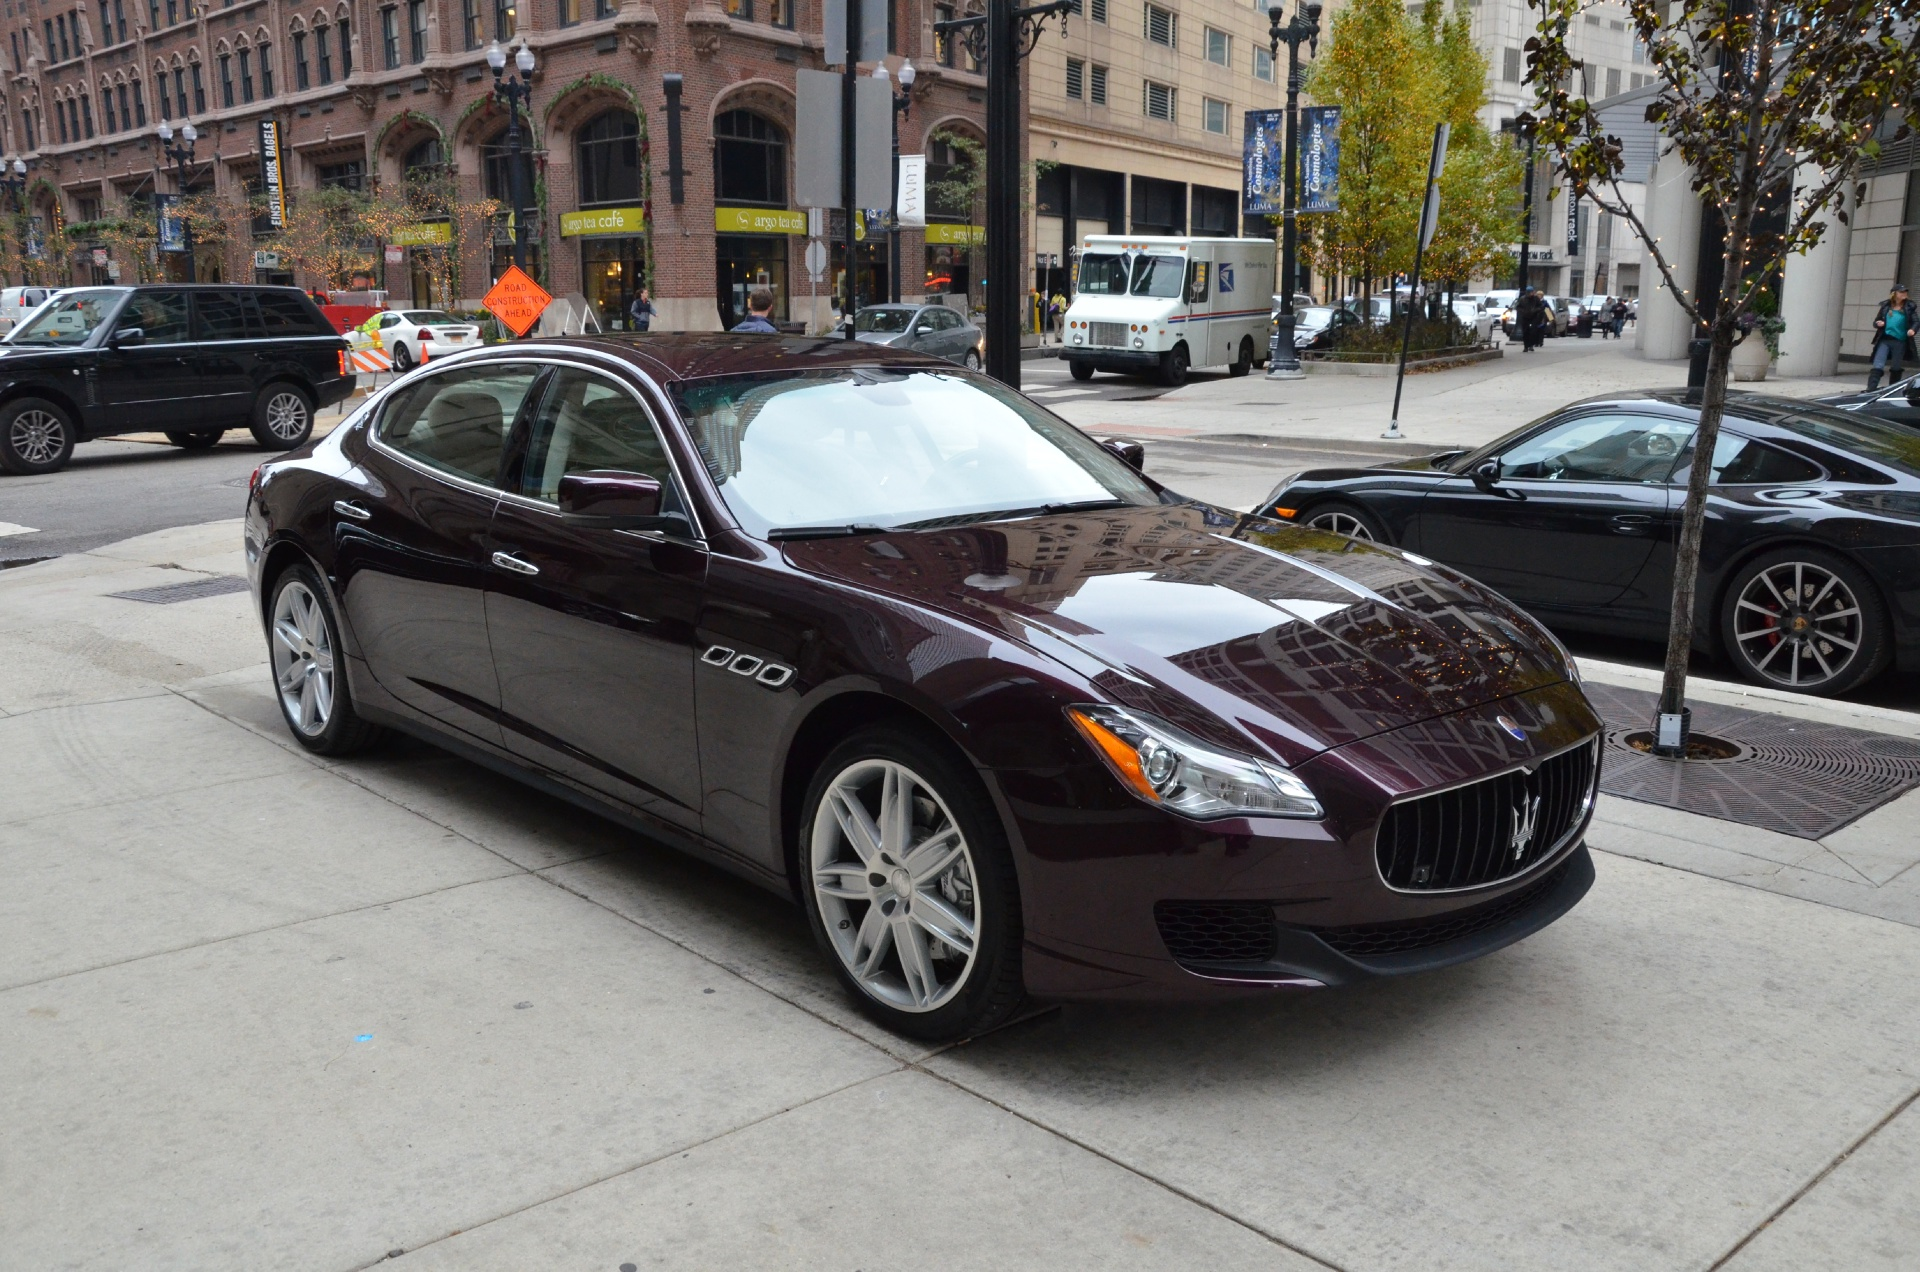 2014 maserati quattroporte s q4 s q4 stock m189 s for sale near chicago il il maserati dealer. Black Bedroom Furniture Sets. Home Design Ideas